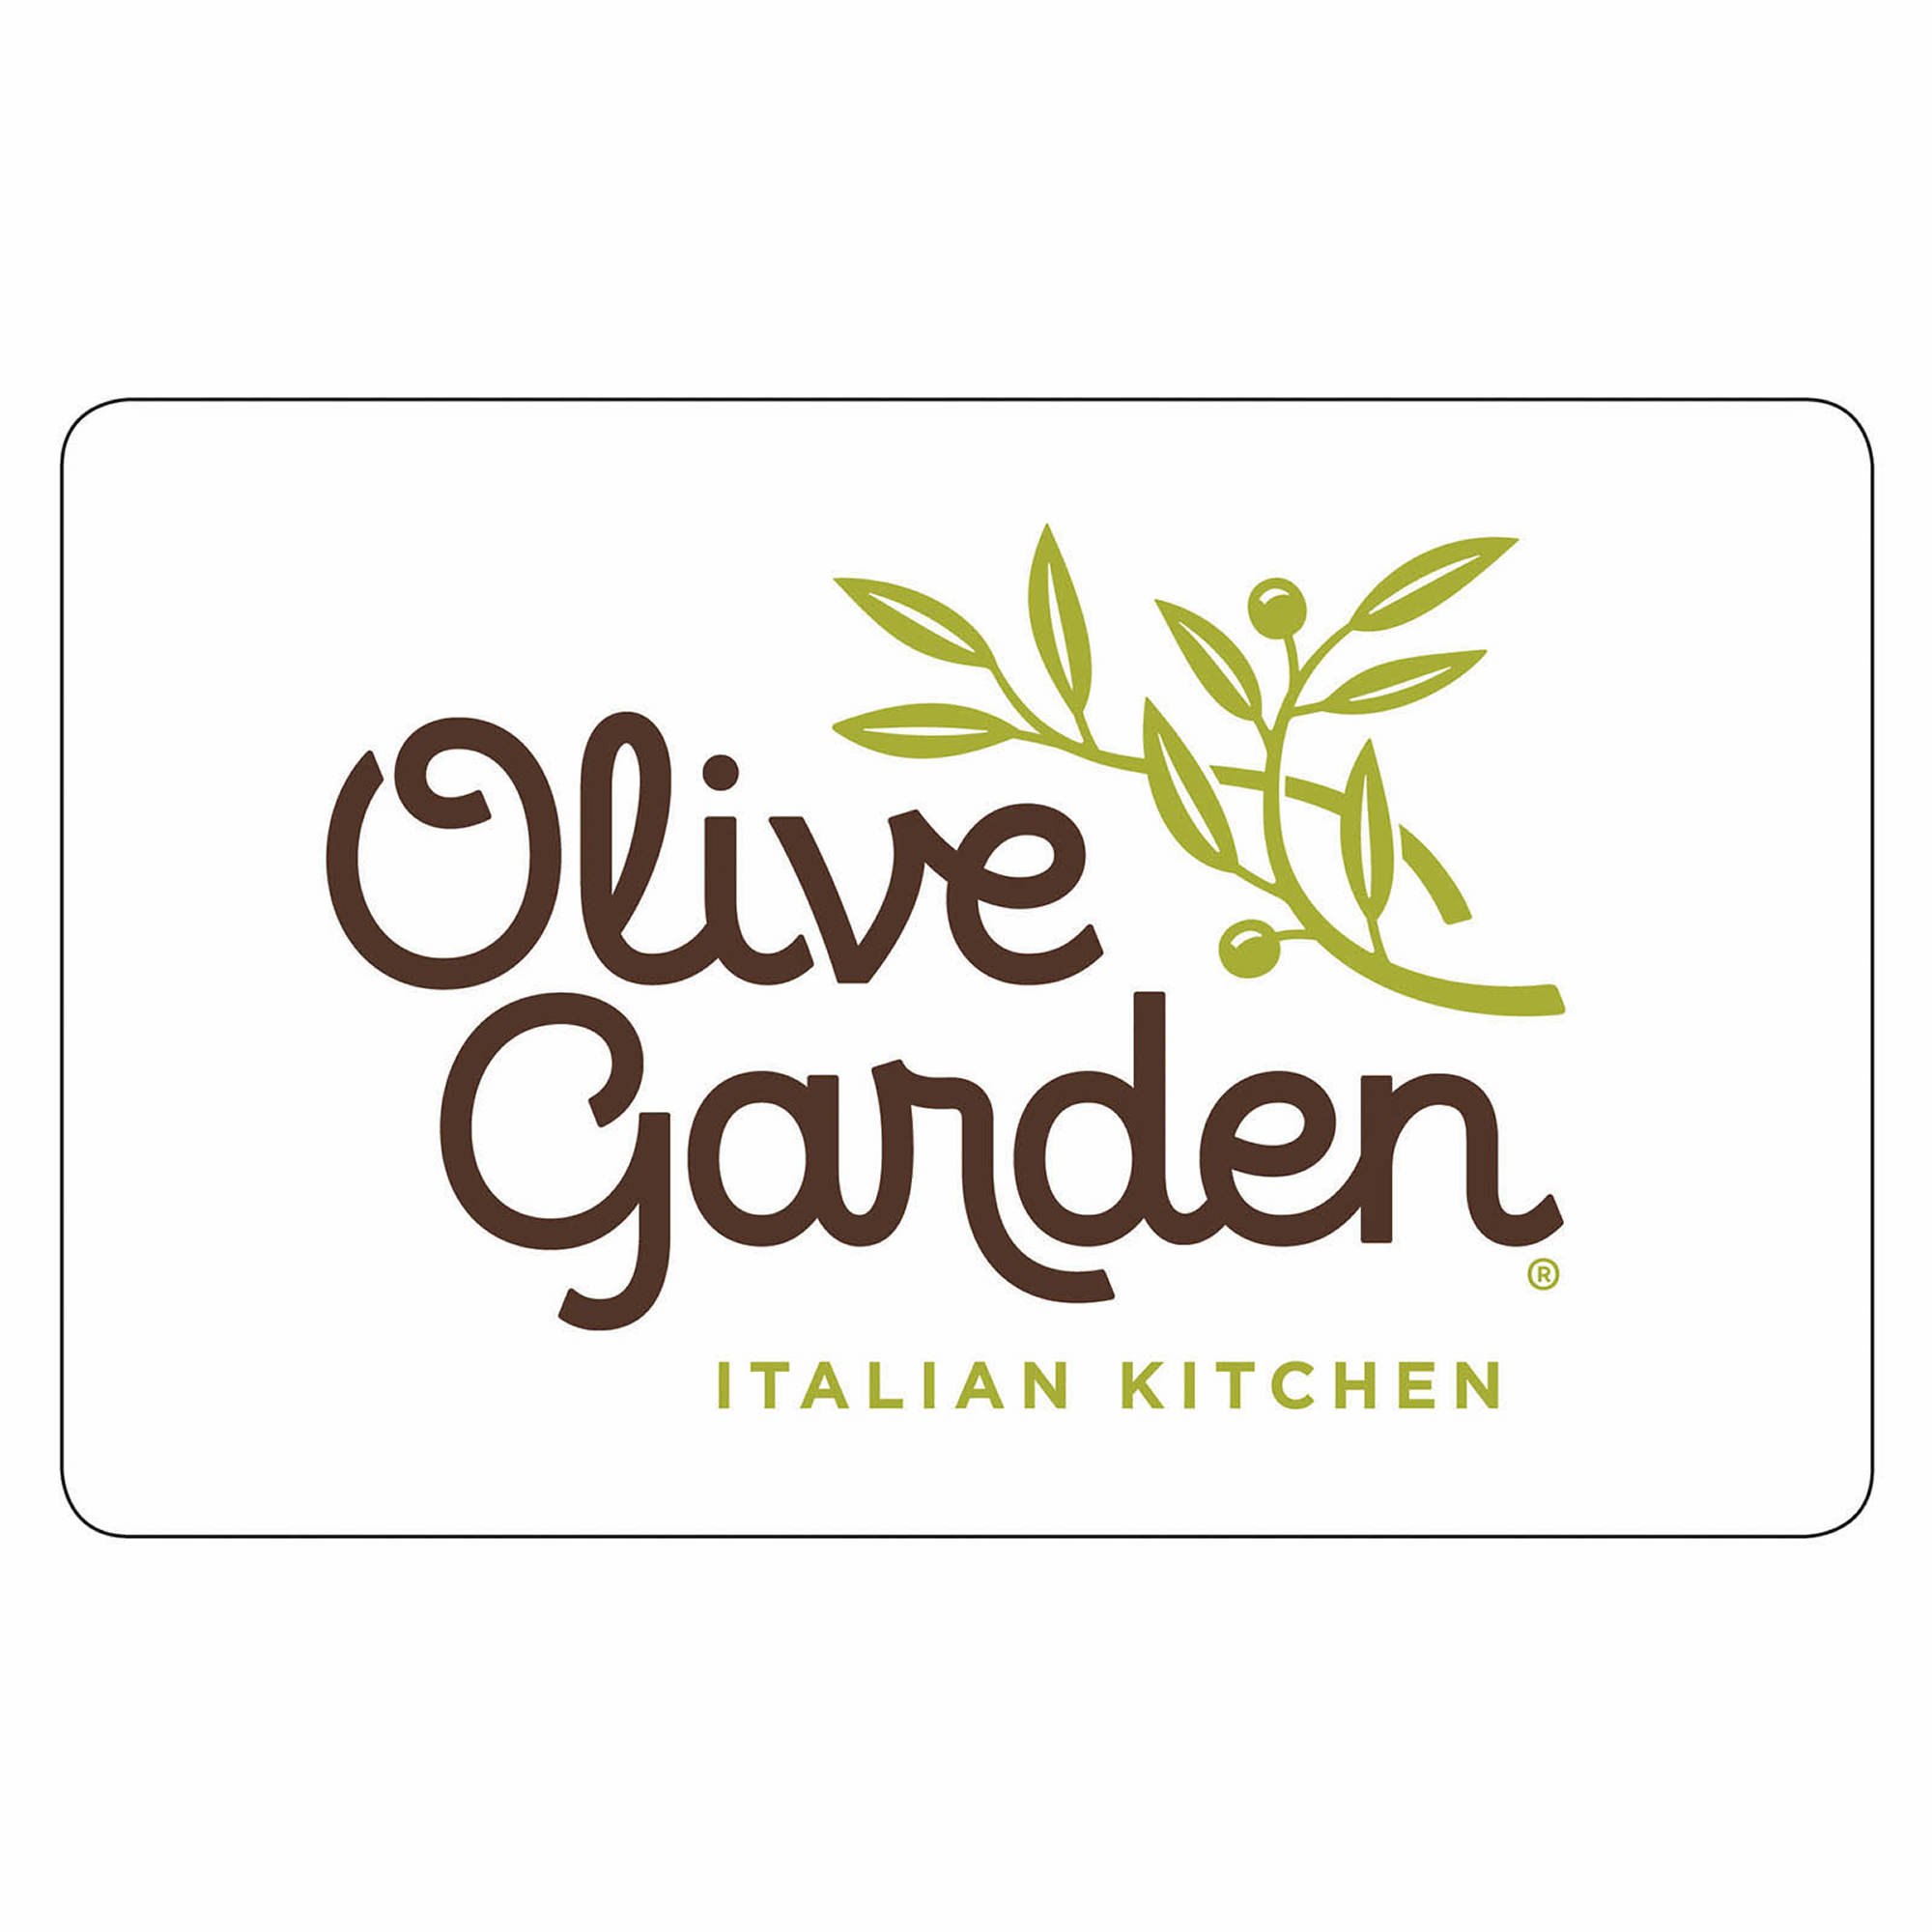 15 Olive Garden Gift Card 4 Pk Bjs Wholesale Club